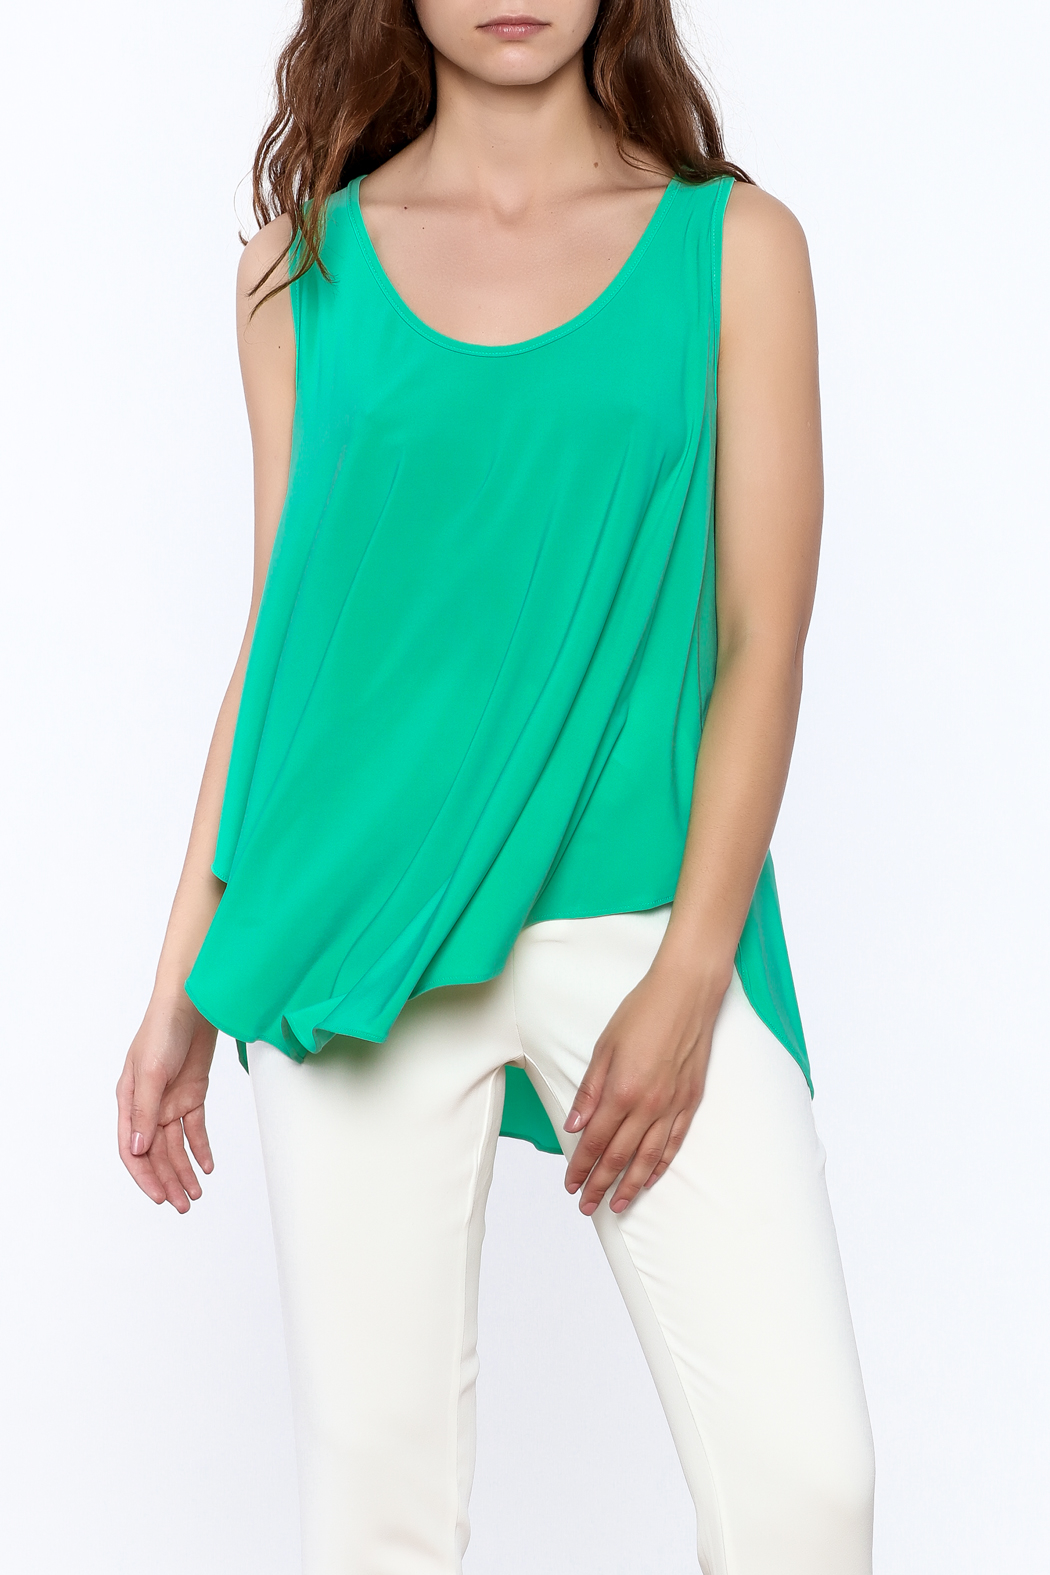 Sharon Max Green Sleeveless Swing Top - Main Image